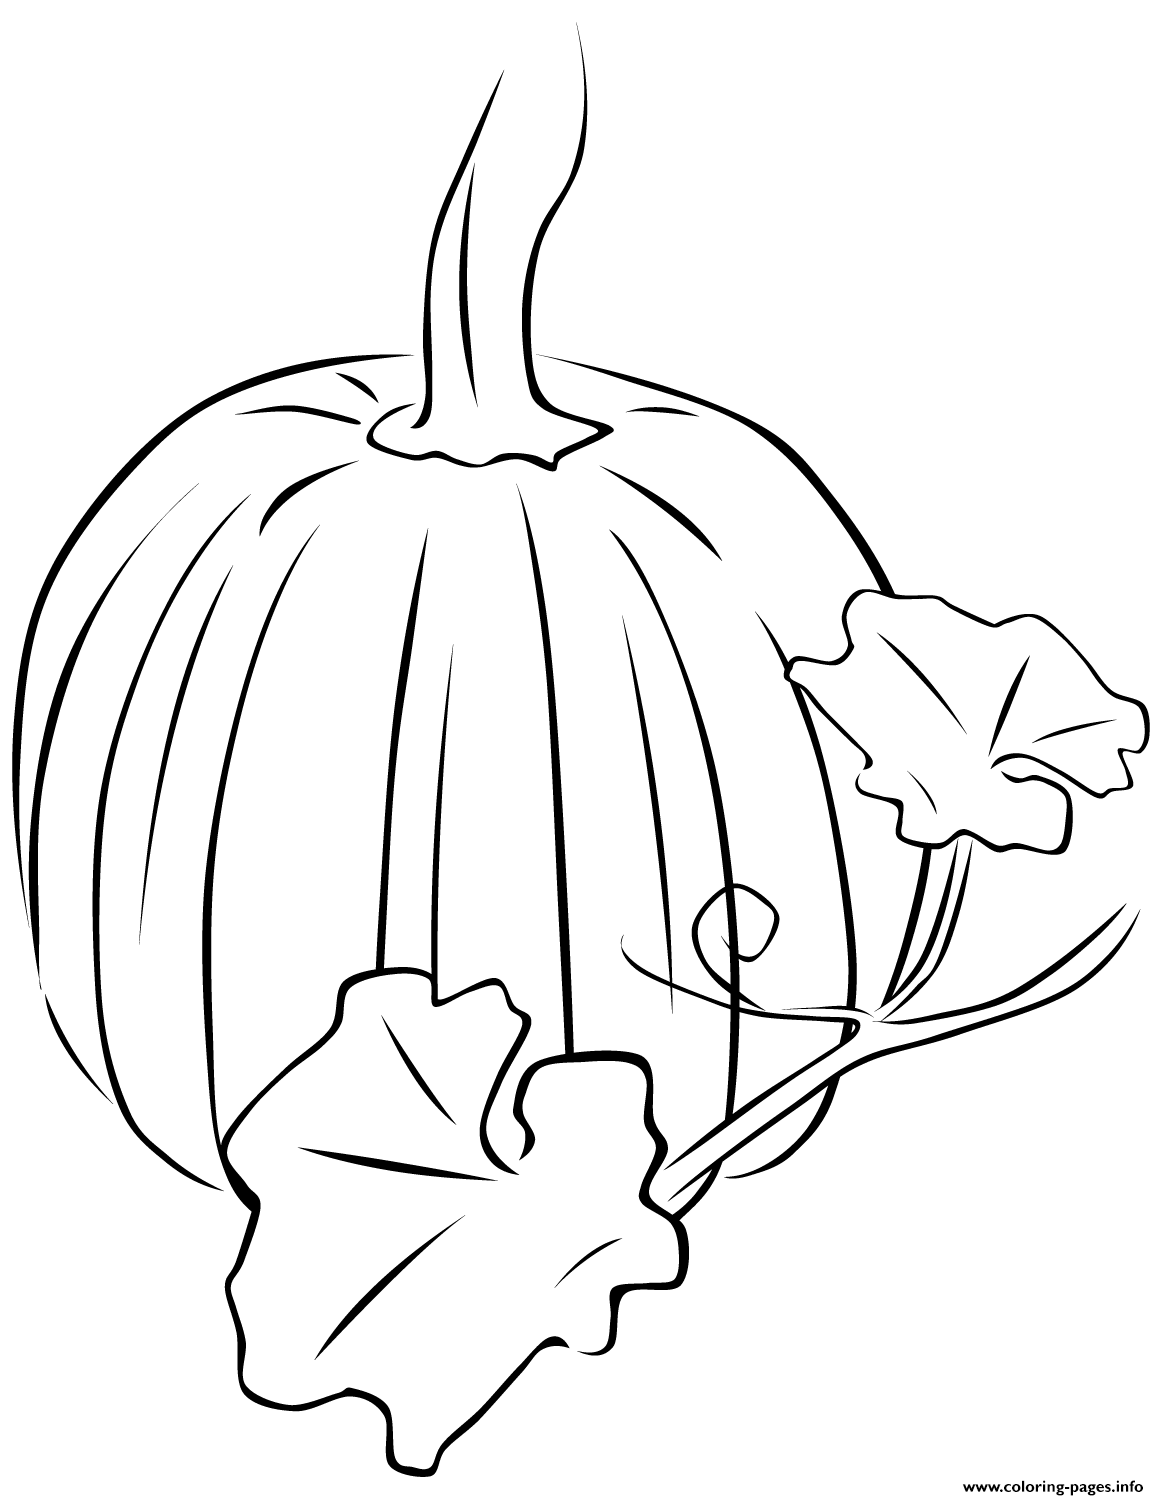 fall pumpkin coloring pages pumpkin halloween fall leaves coloring pages printable fall pumpkin pages coloring